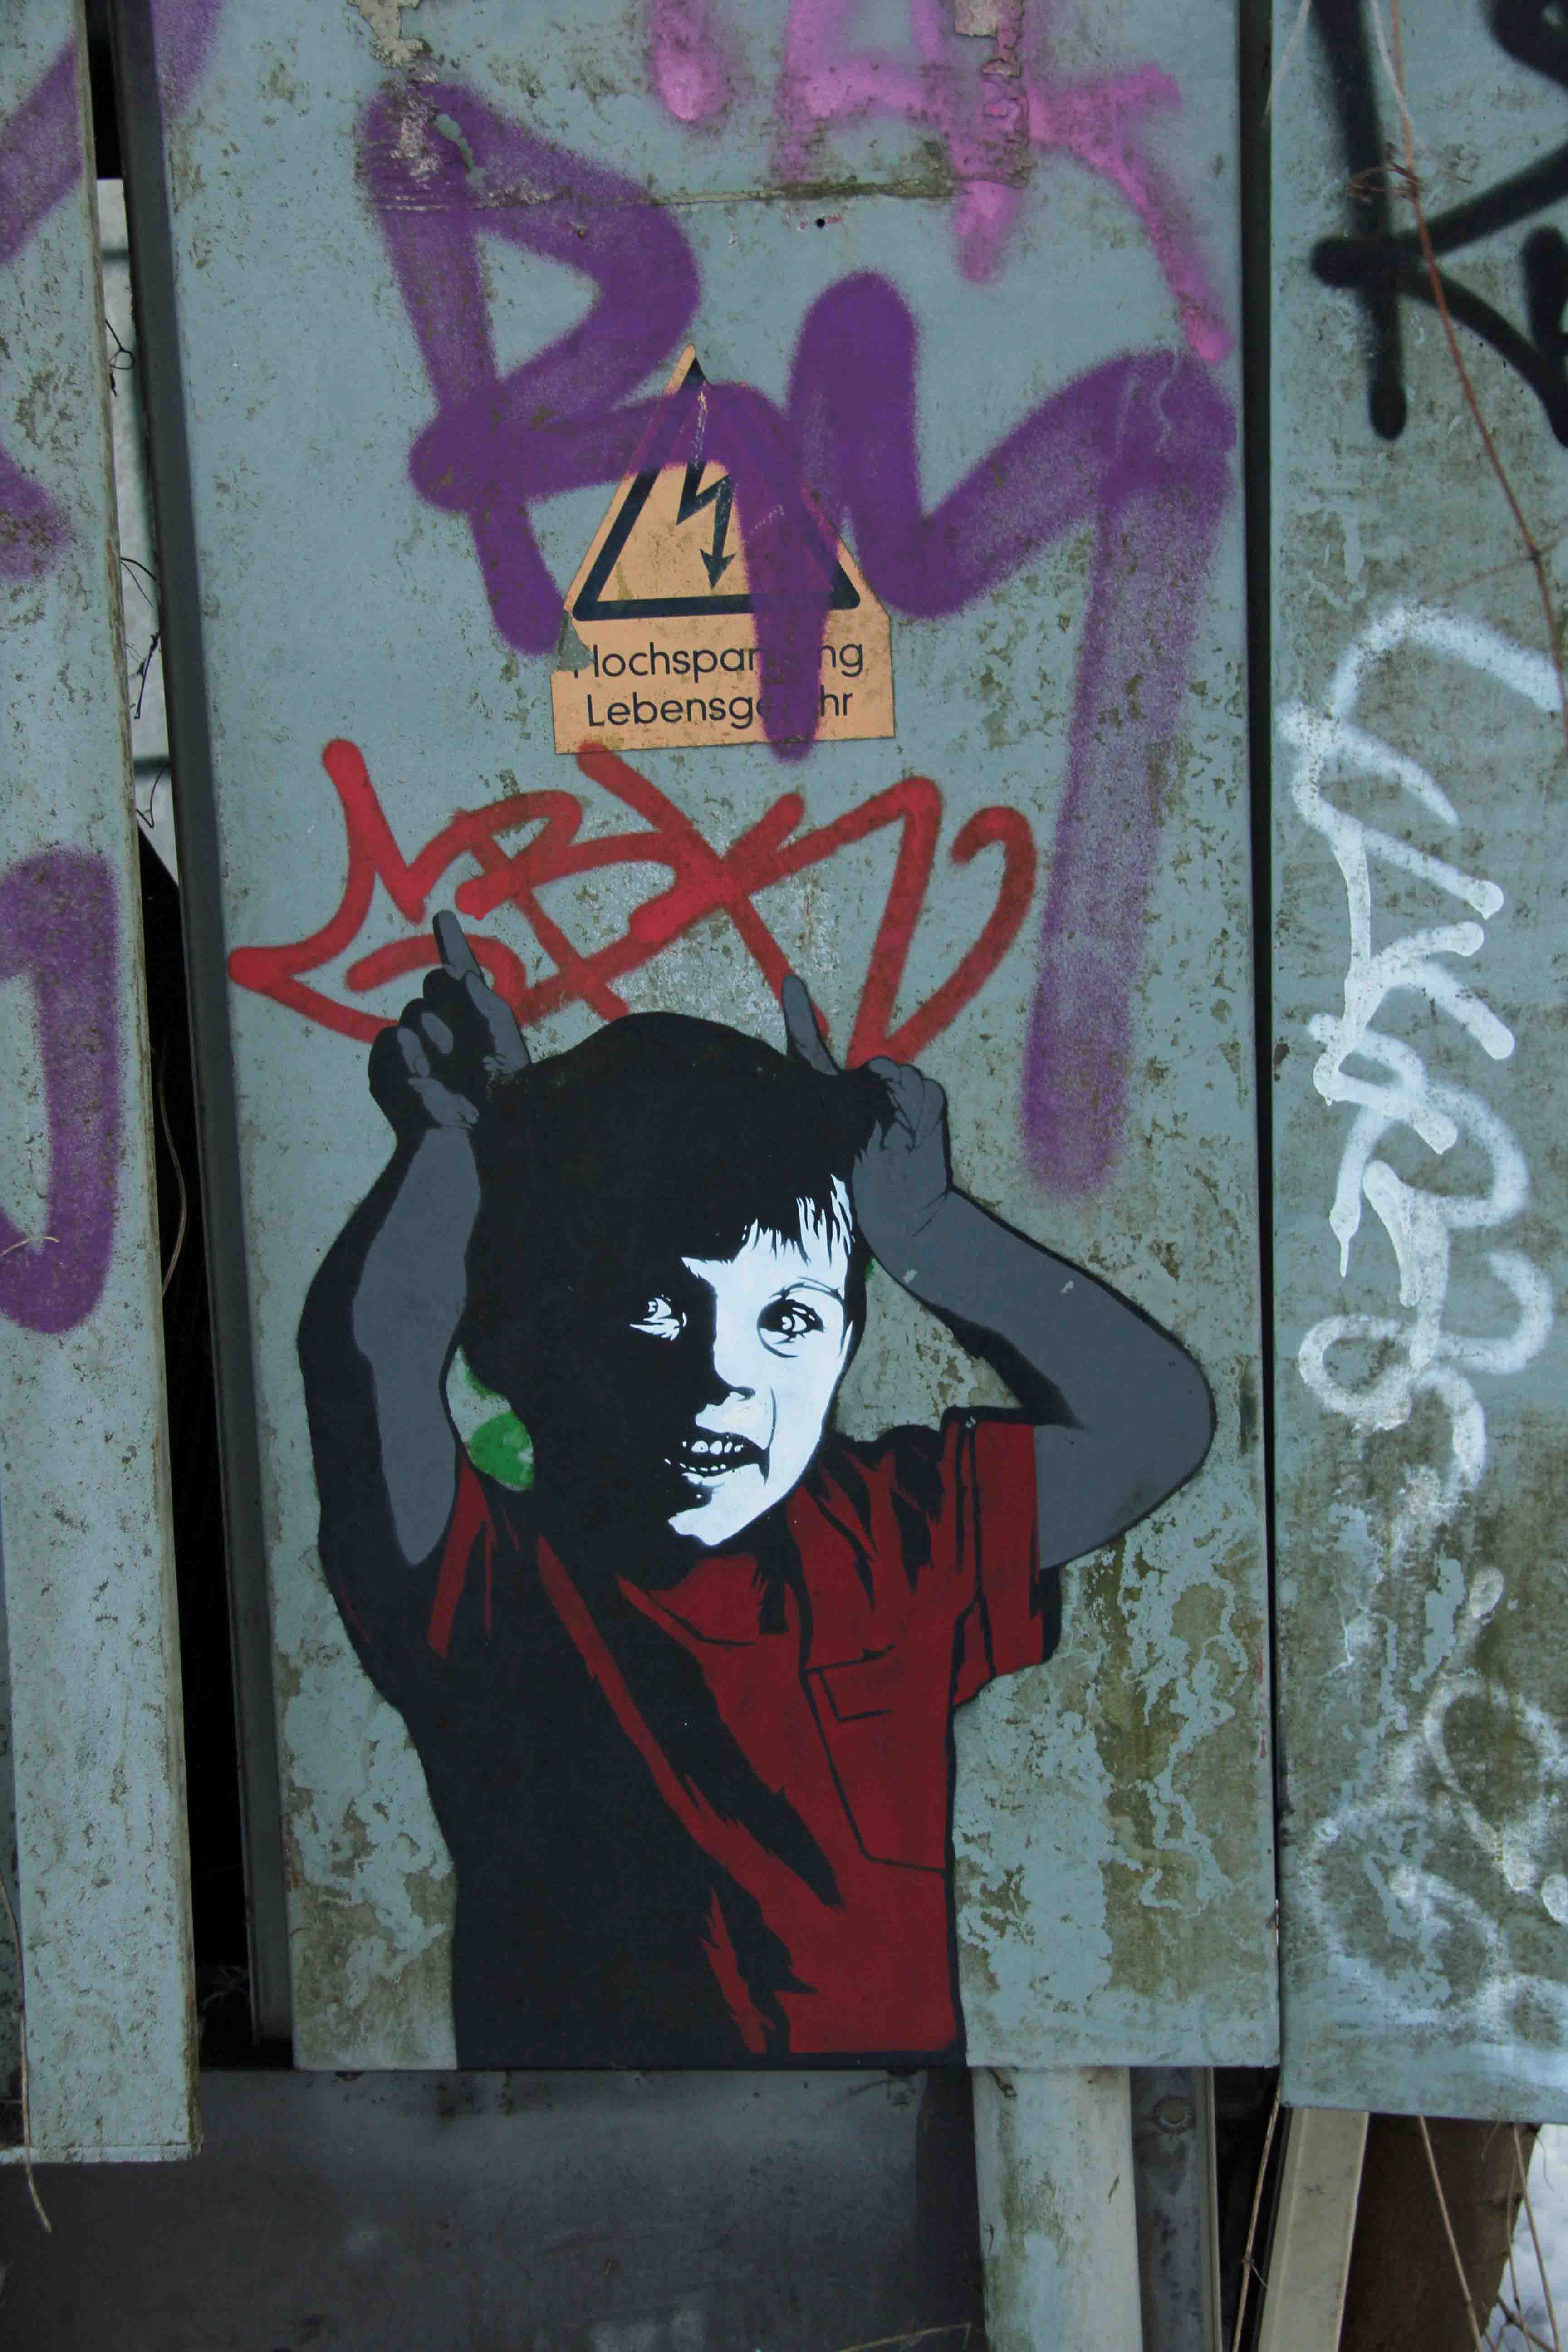 Cheeky Boy - Street Art by ALIAS (painted for Artbase 2012) at the former NSA Listening Station at Teufelsberg Berlin